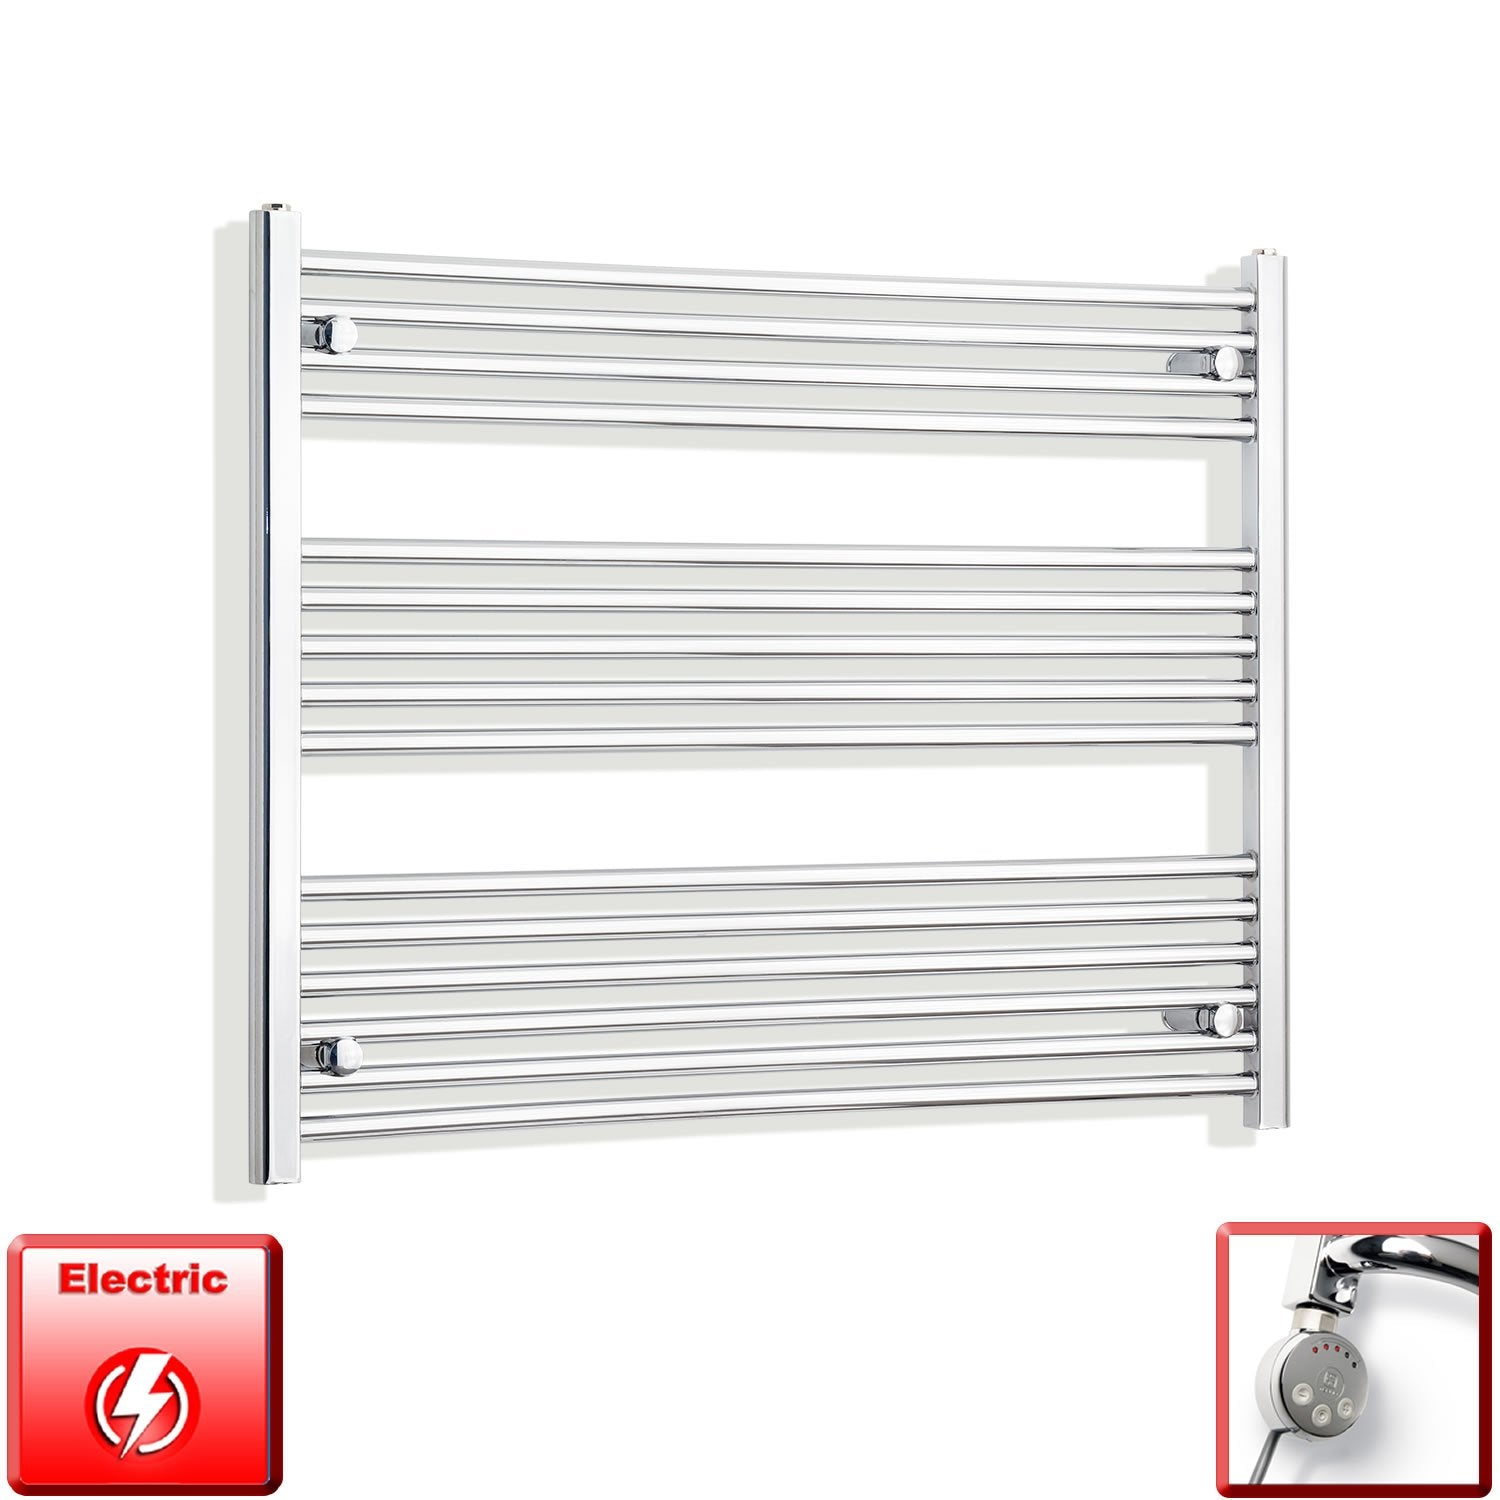 950mm Wide 800mm High Flat Chrome Pre-Filled Electric Heated Towel Rail Radiator HTR,MEG Thermostatic Element